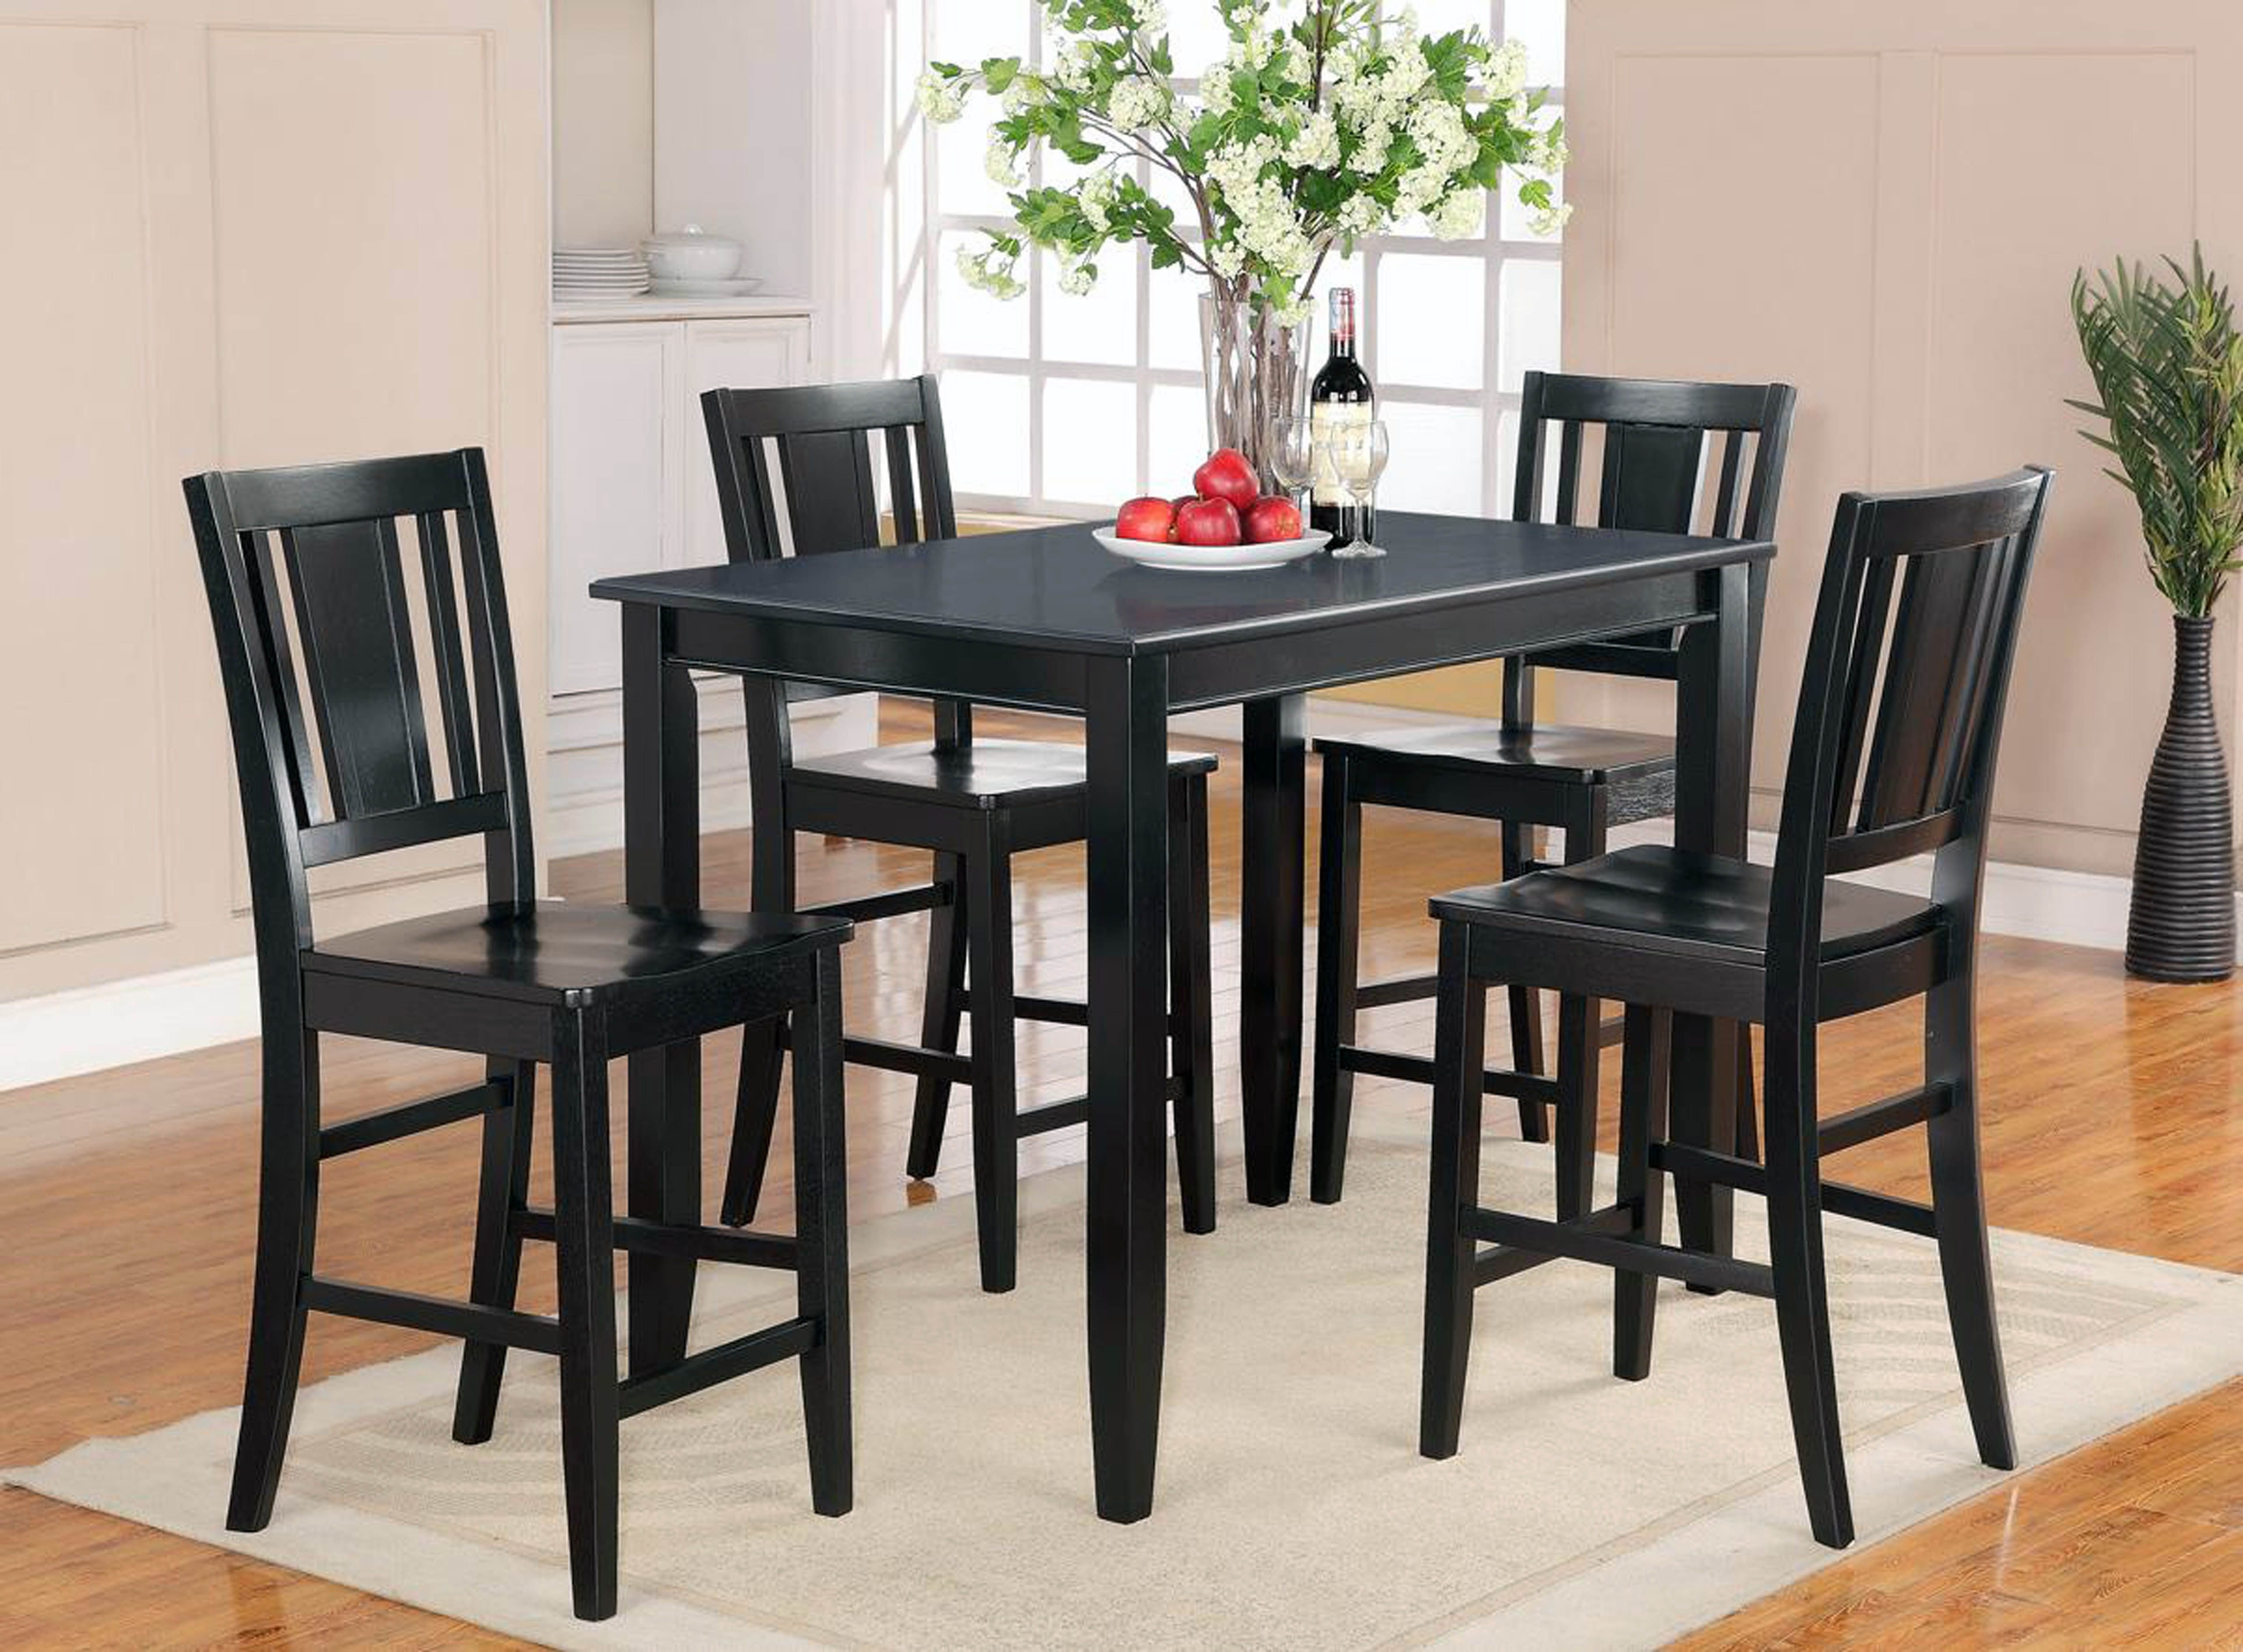 Wooden Kitchen Table Round Dining With Leaf Counter Height Small For Best And Newest Small Dark Wood Dining Tables (View 25 of 25)